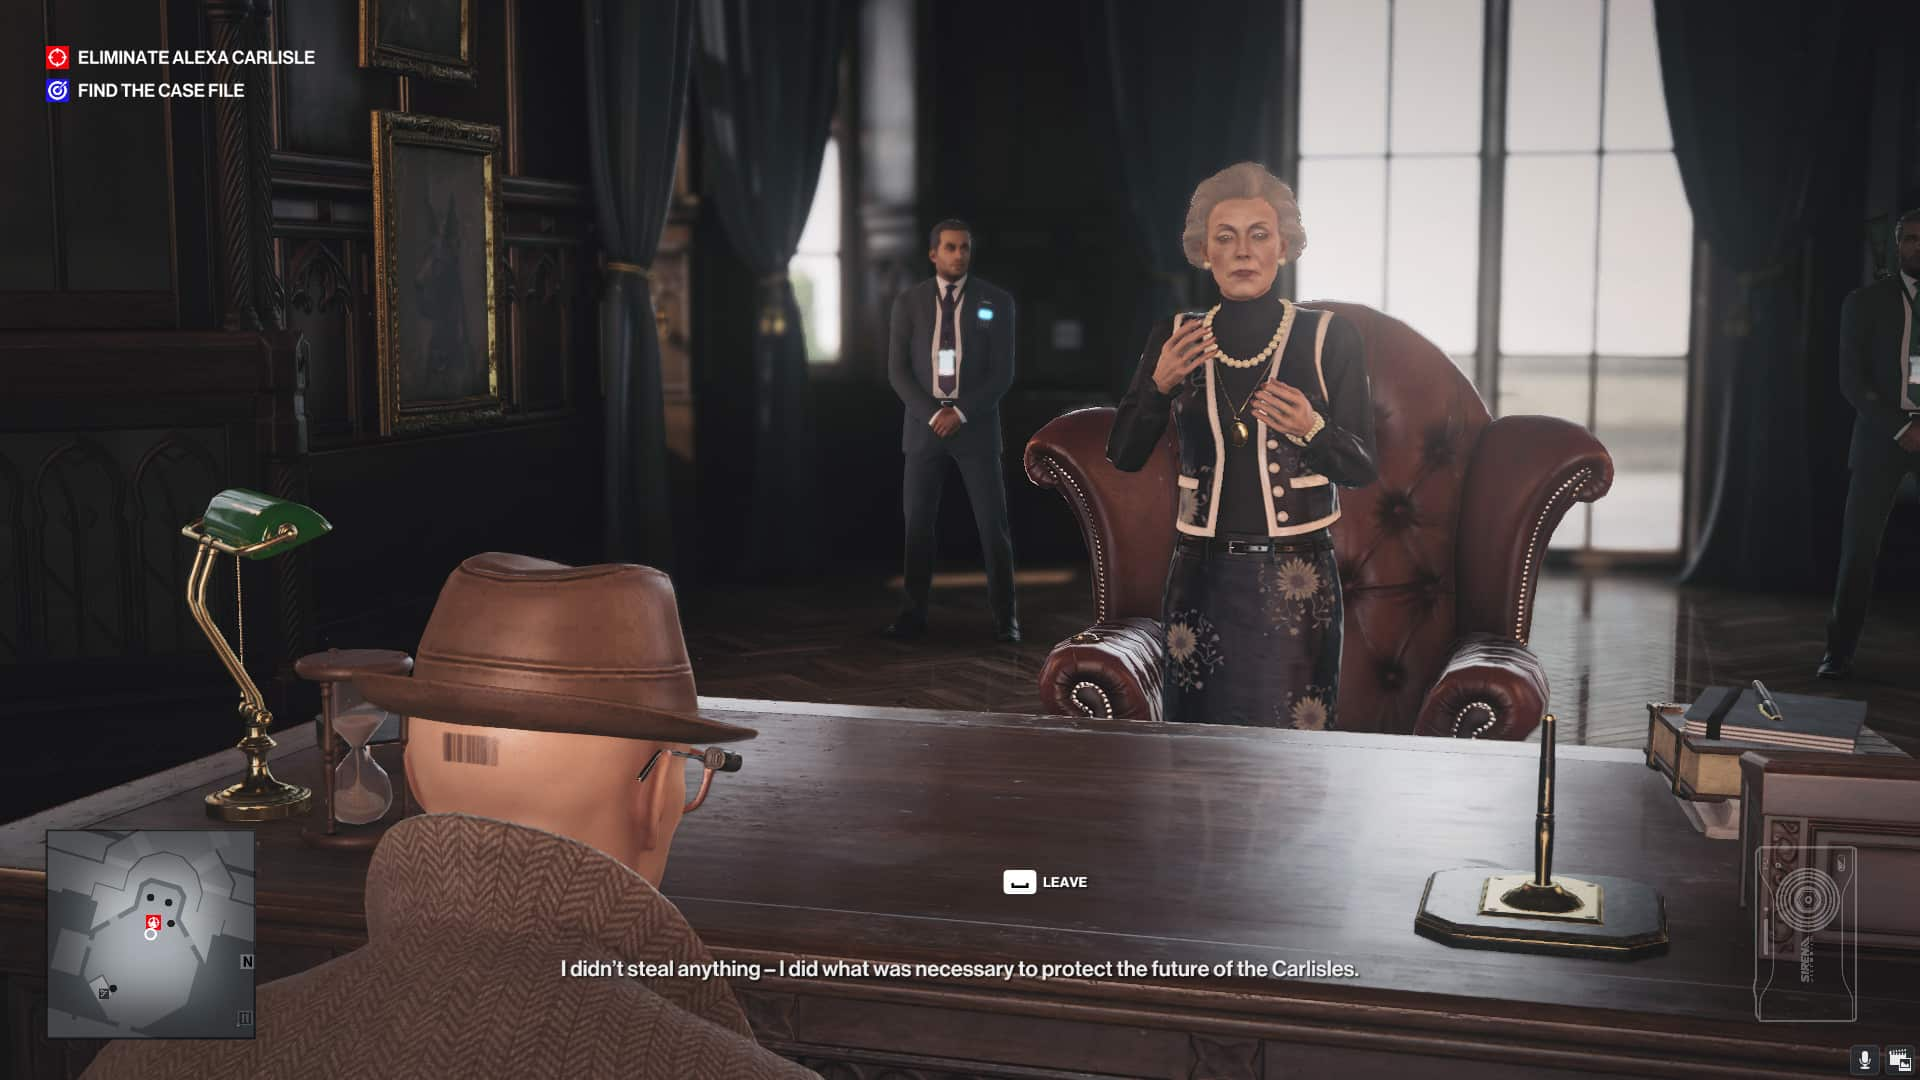 IO Interactive Hitman 3 video game gimmicks involve player Agent 47 in story narrative